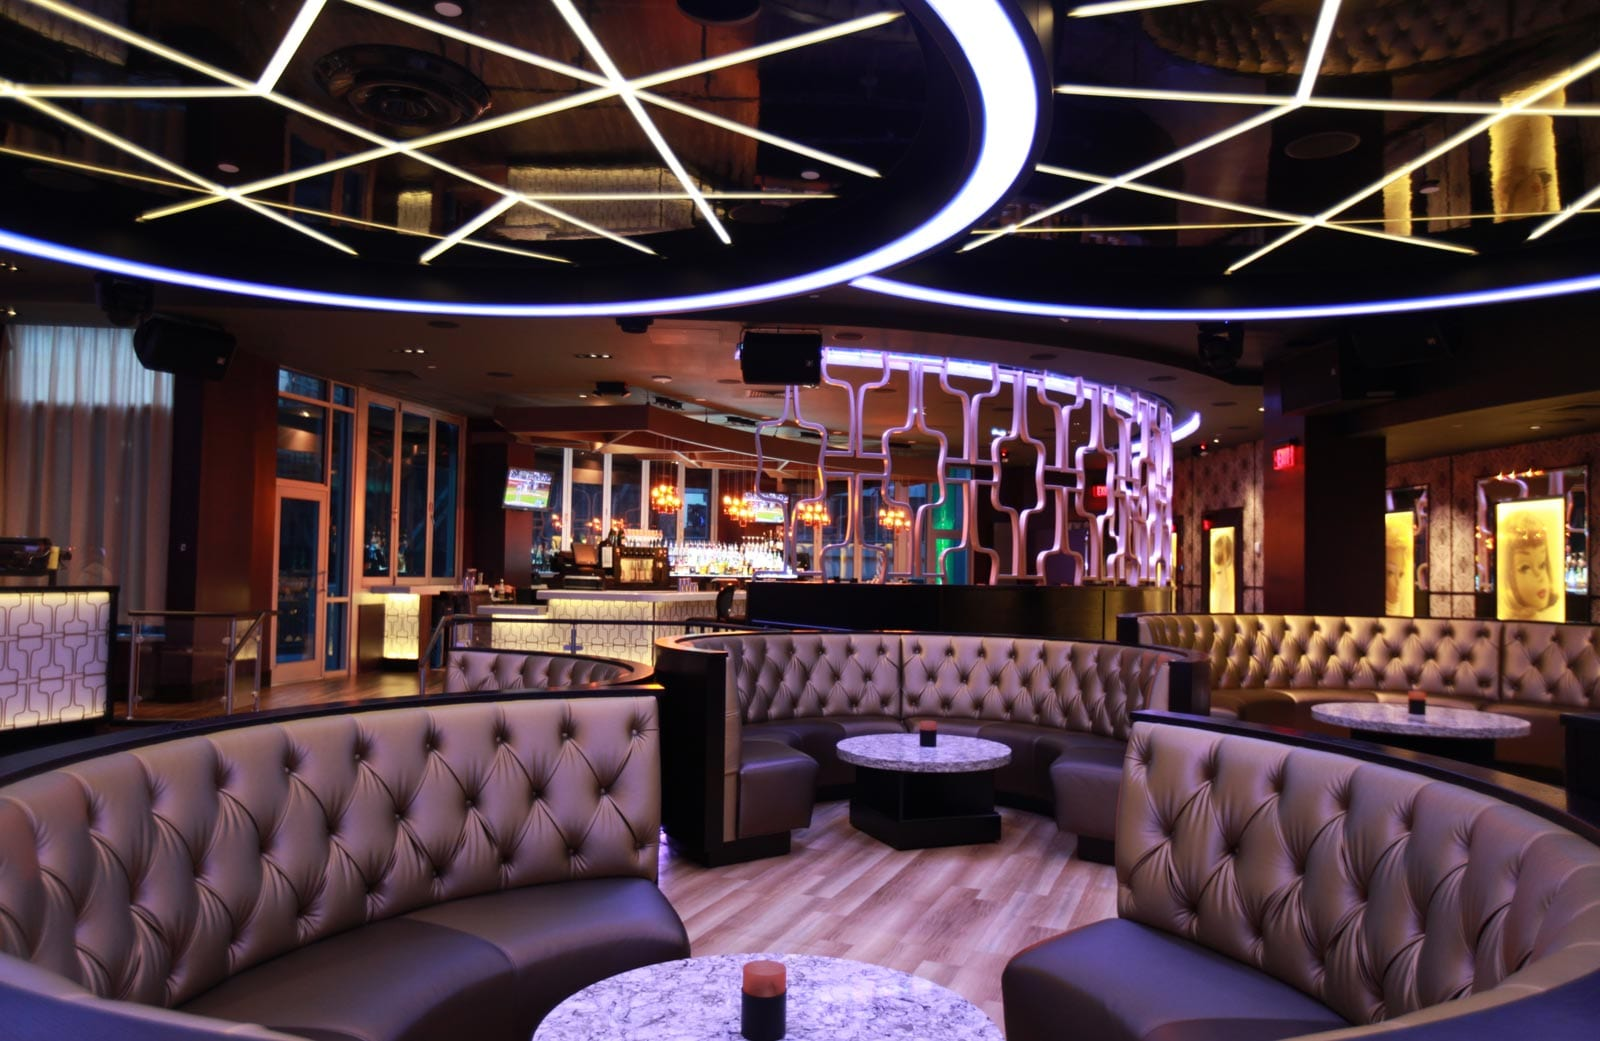 Bubble nightclub design bar restaurant design by big time design studios - Eigentijdse design lounge ...